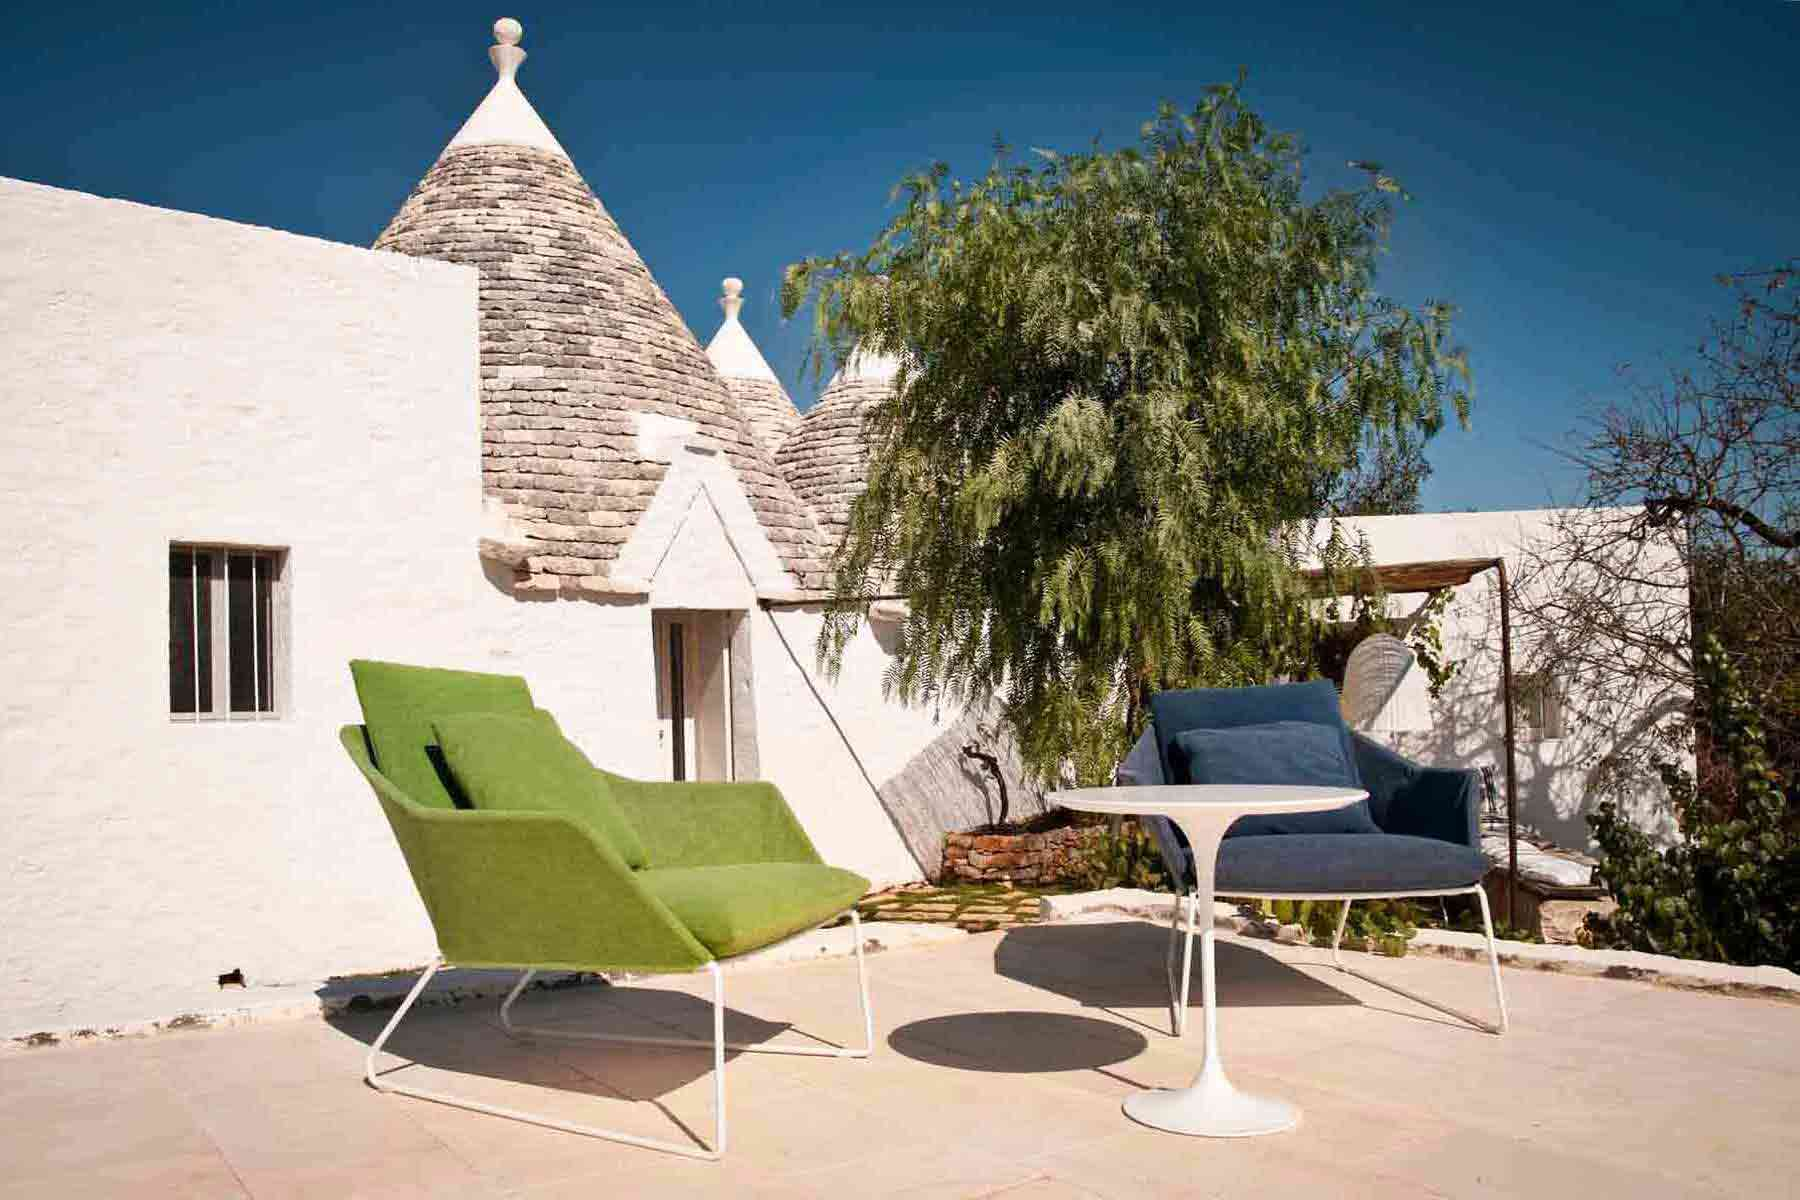 Relax in trullo Kasba in Ostuni